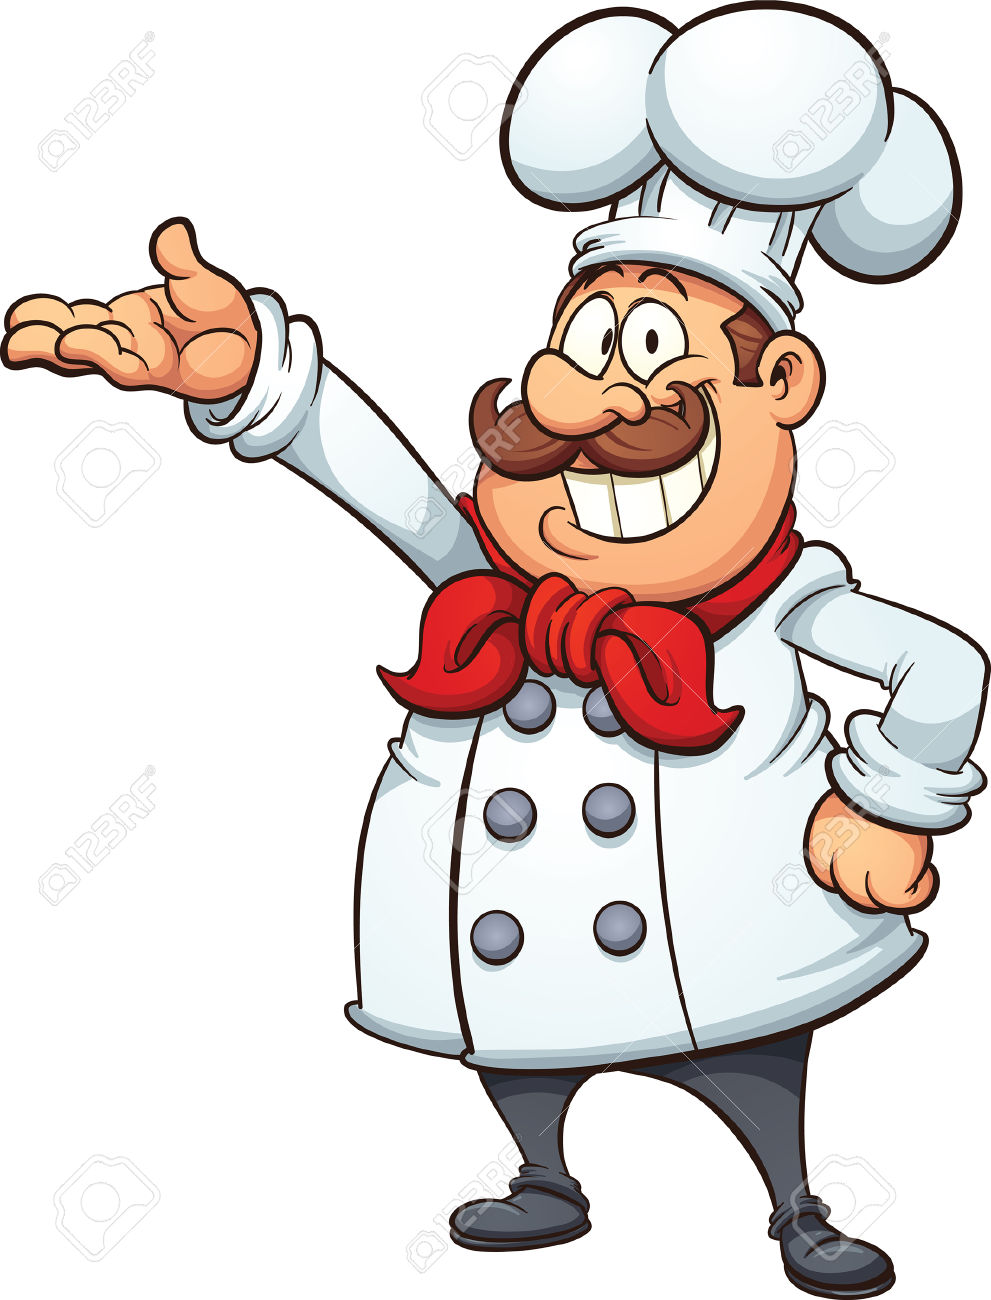 Chef clipart jpg black and white stock Chef clipart cartoon - ClipartFest jpg black and white stock